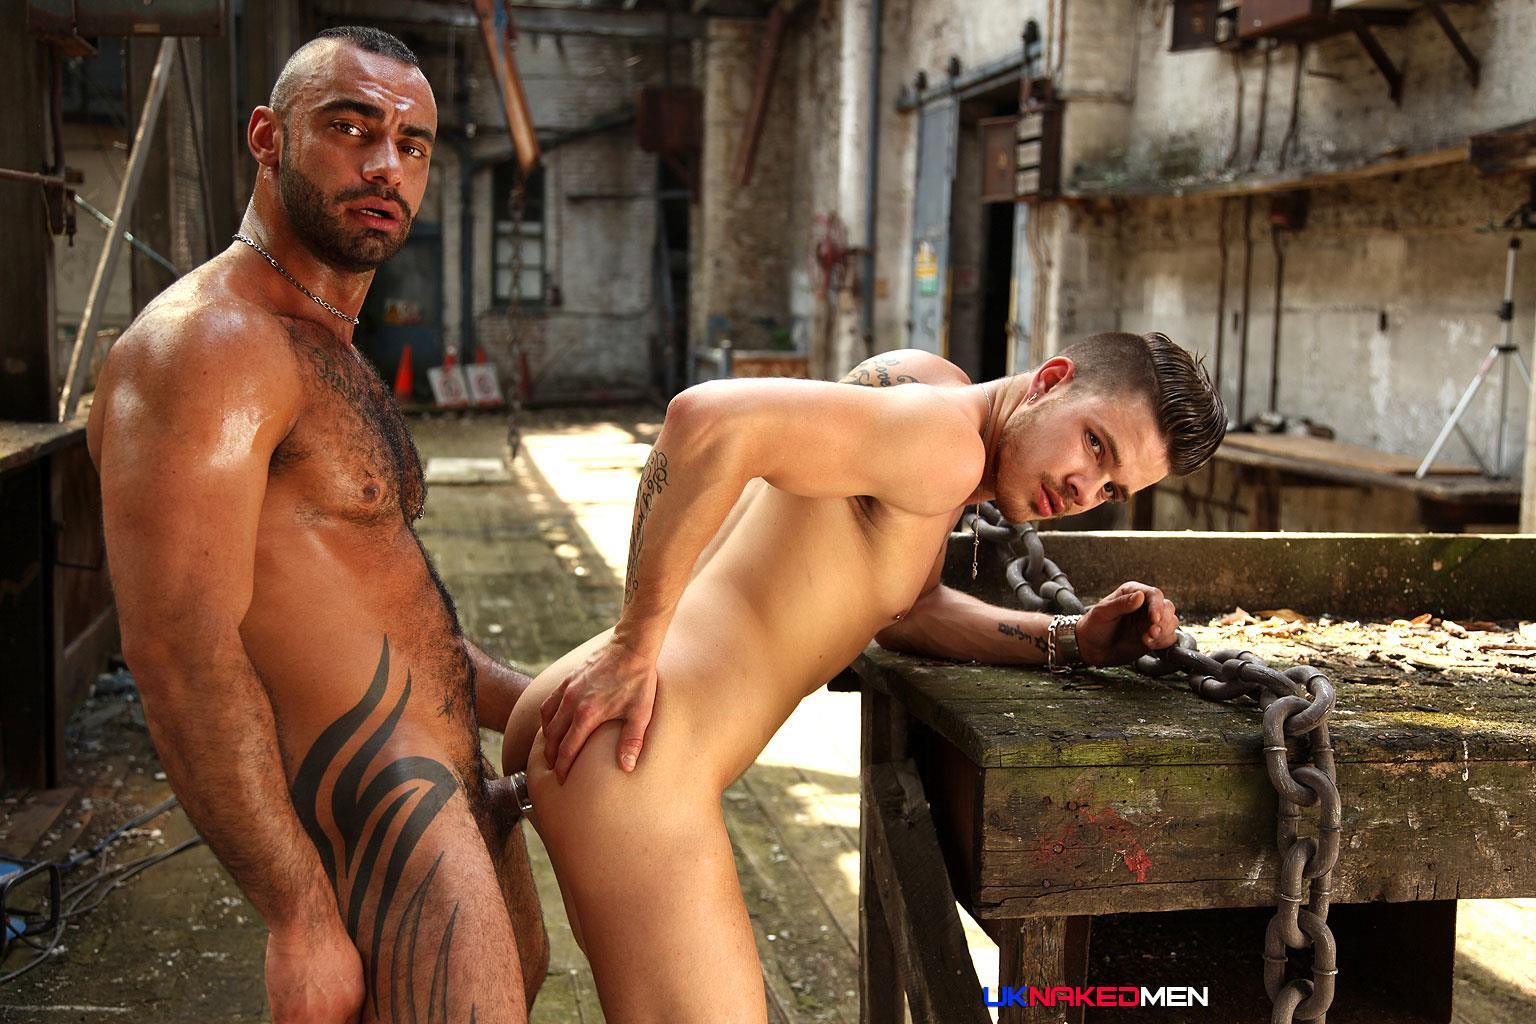 UK Naked Men Fuck Loving Criminals Episode 4 Tony Thorn and Fabio Lopez Hairy Arab Fucking A Smooth Guy Amateur Gay Porn 16 Hairy Muscle Stud Tony Thorn Fucking Smooth Muscle Hunk Fabio Lopez